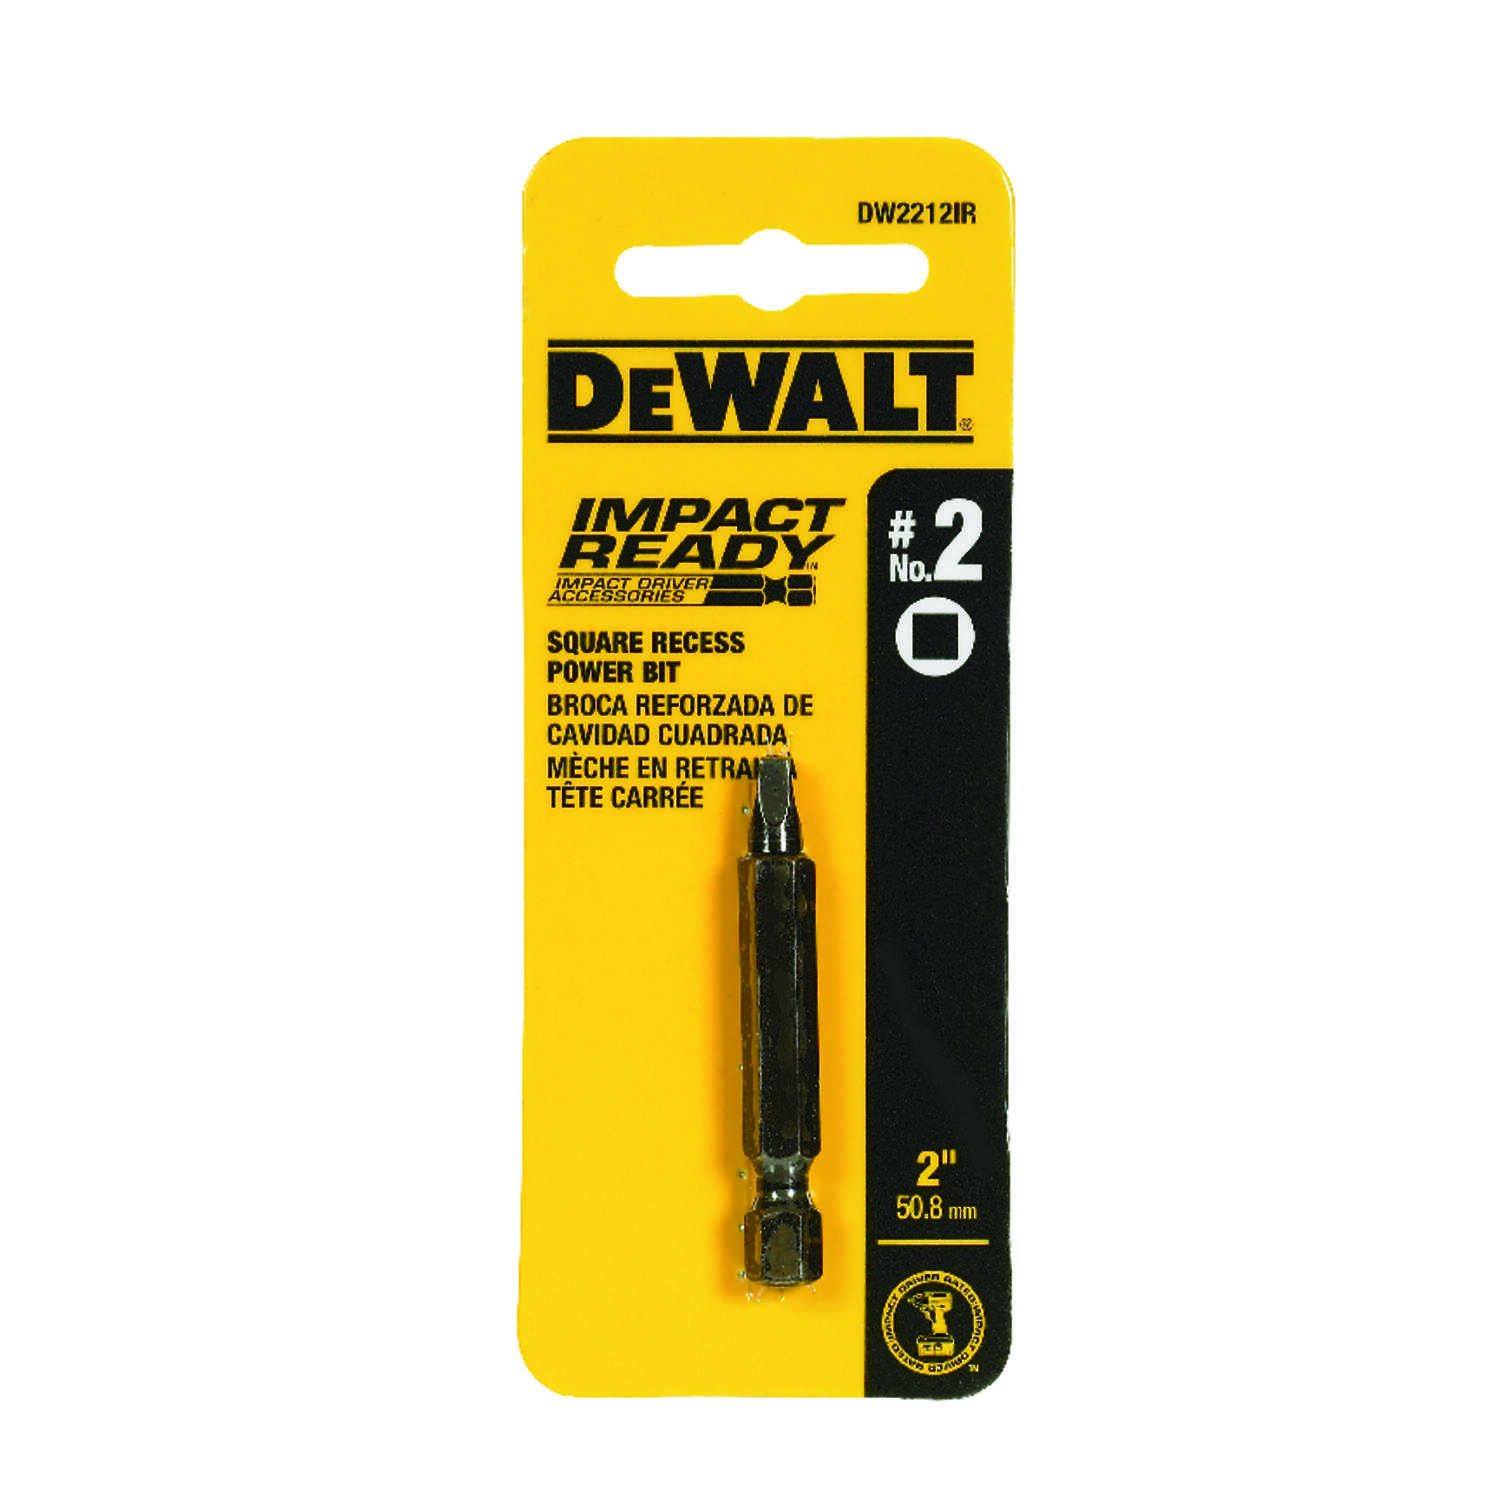 DeWalt  Impact Ready  Square  #2 in.  x 2 in. L Screwdriver Bit  Black Oxide  1/4 in. 1 pc.